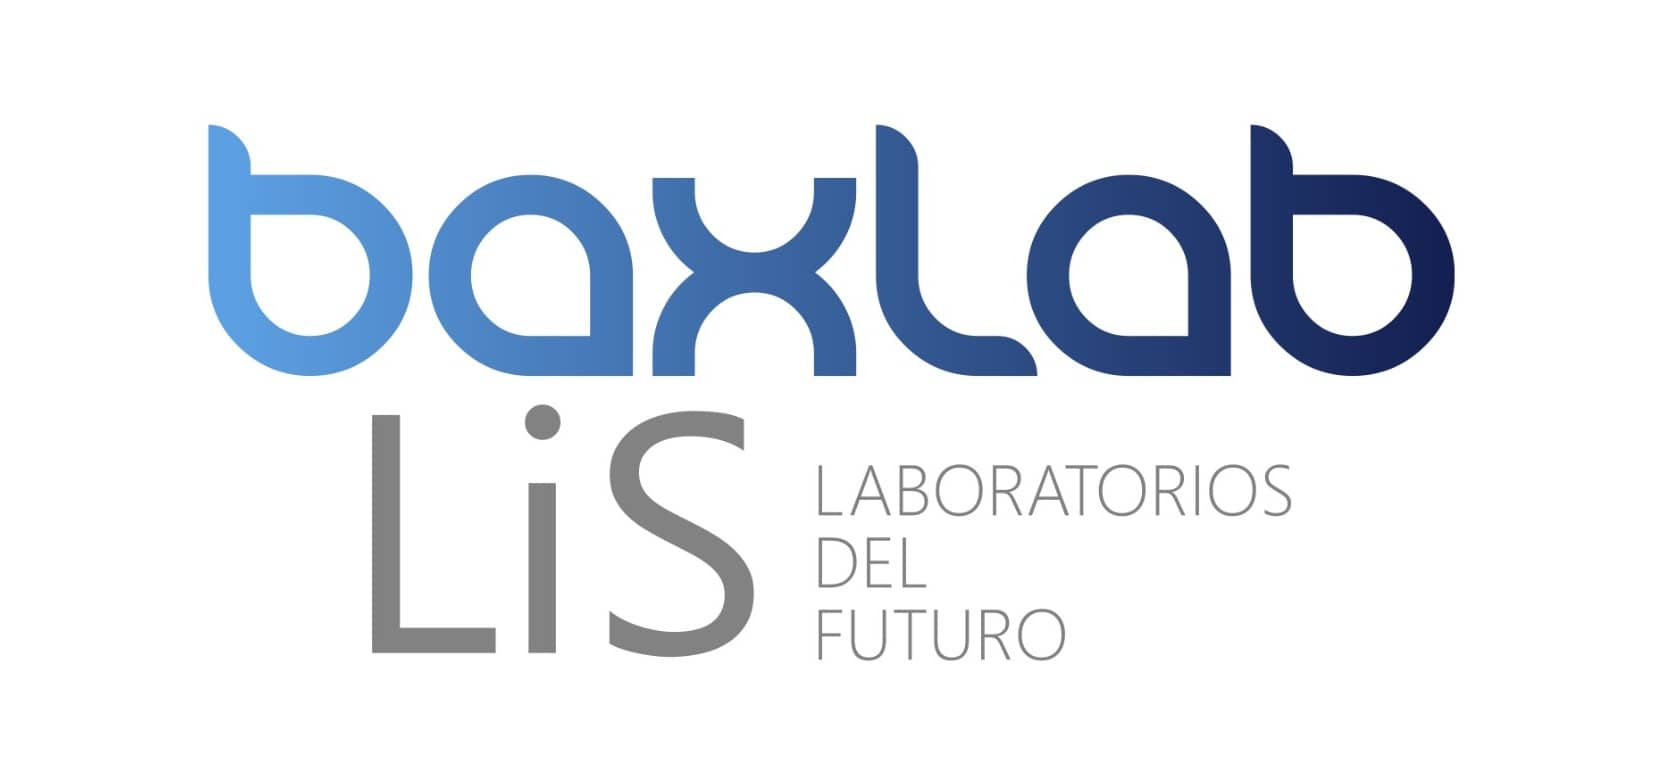 BaxLAB LiS  - Software de Manejo de Información en el Laboratorio Clínico, Interfaces e Integración con Hospitales